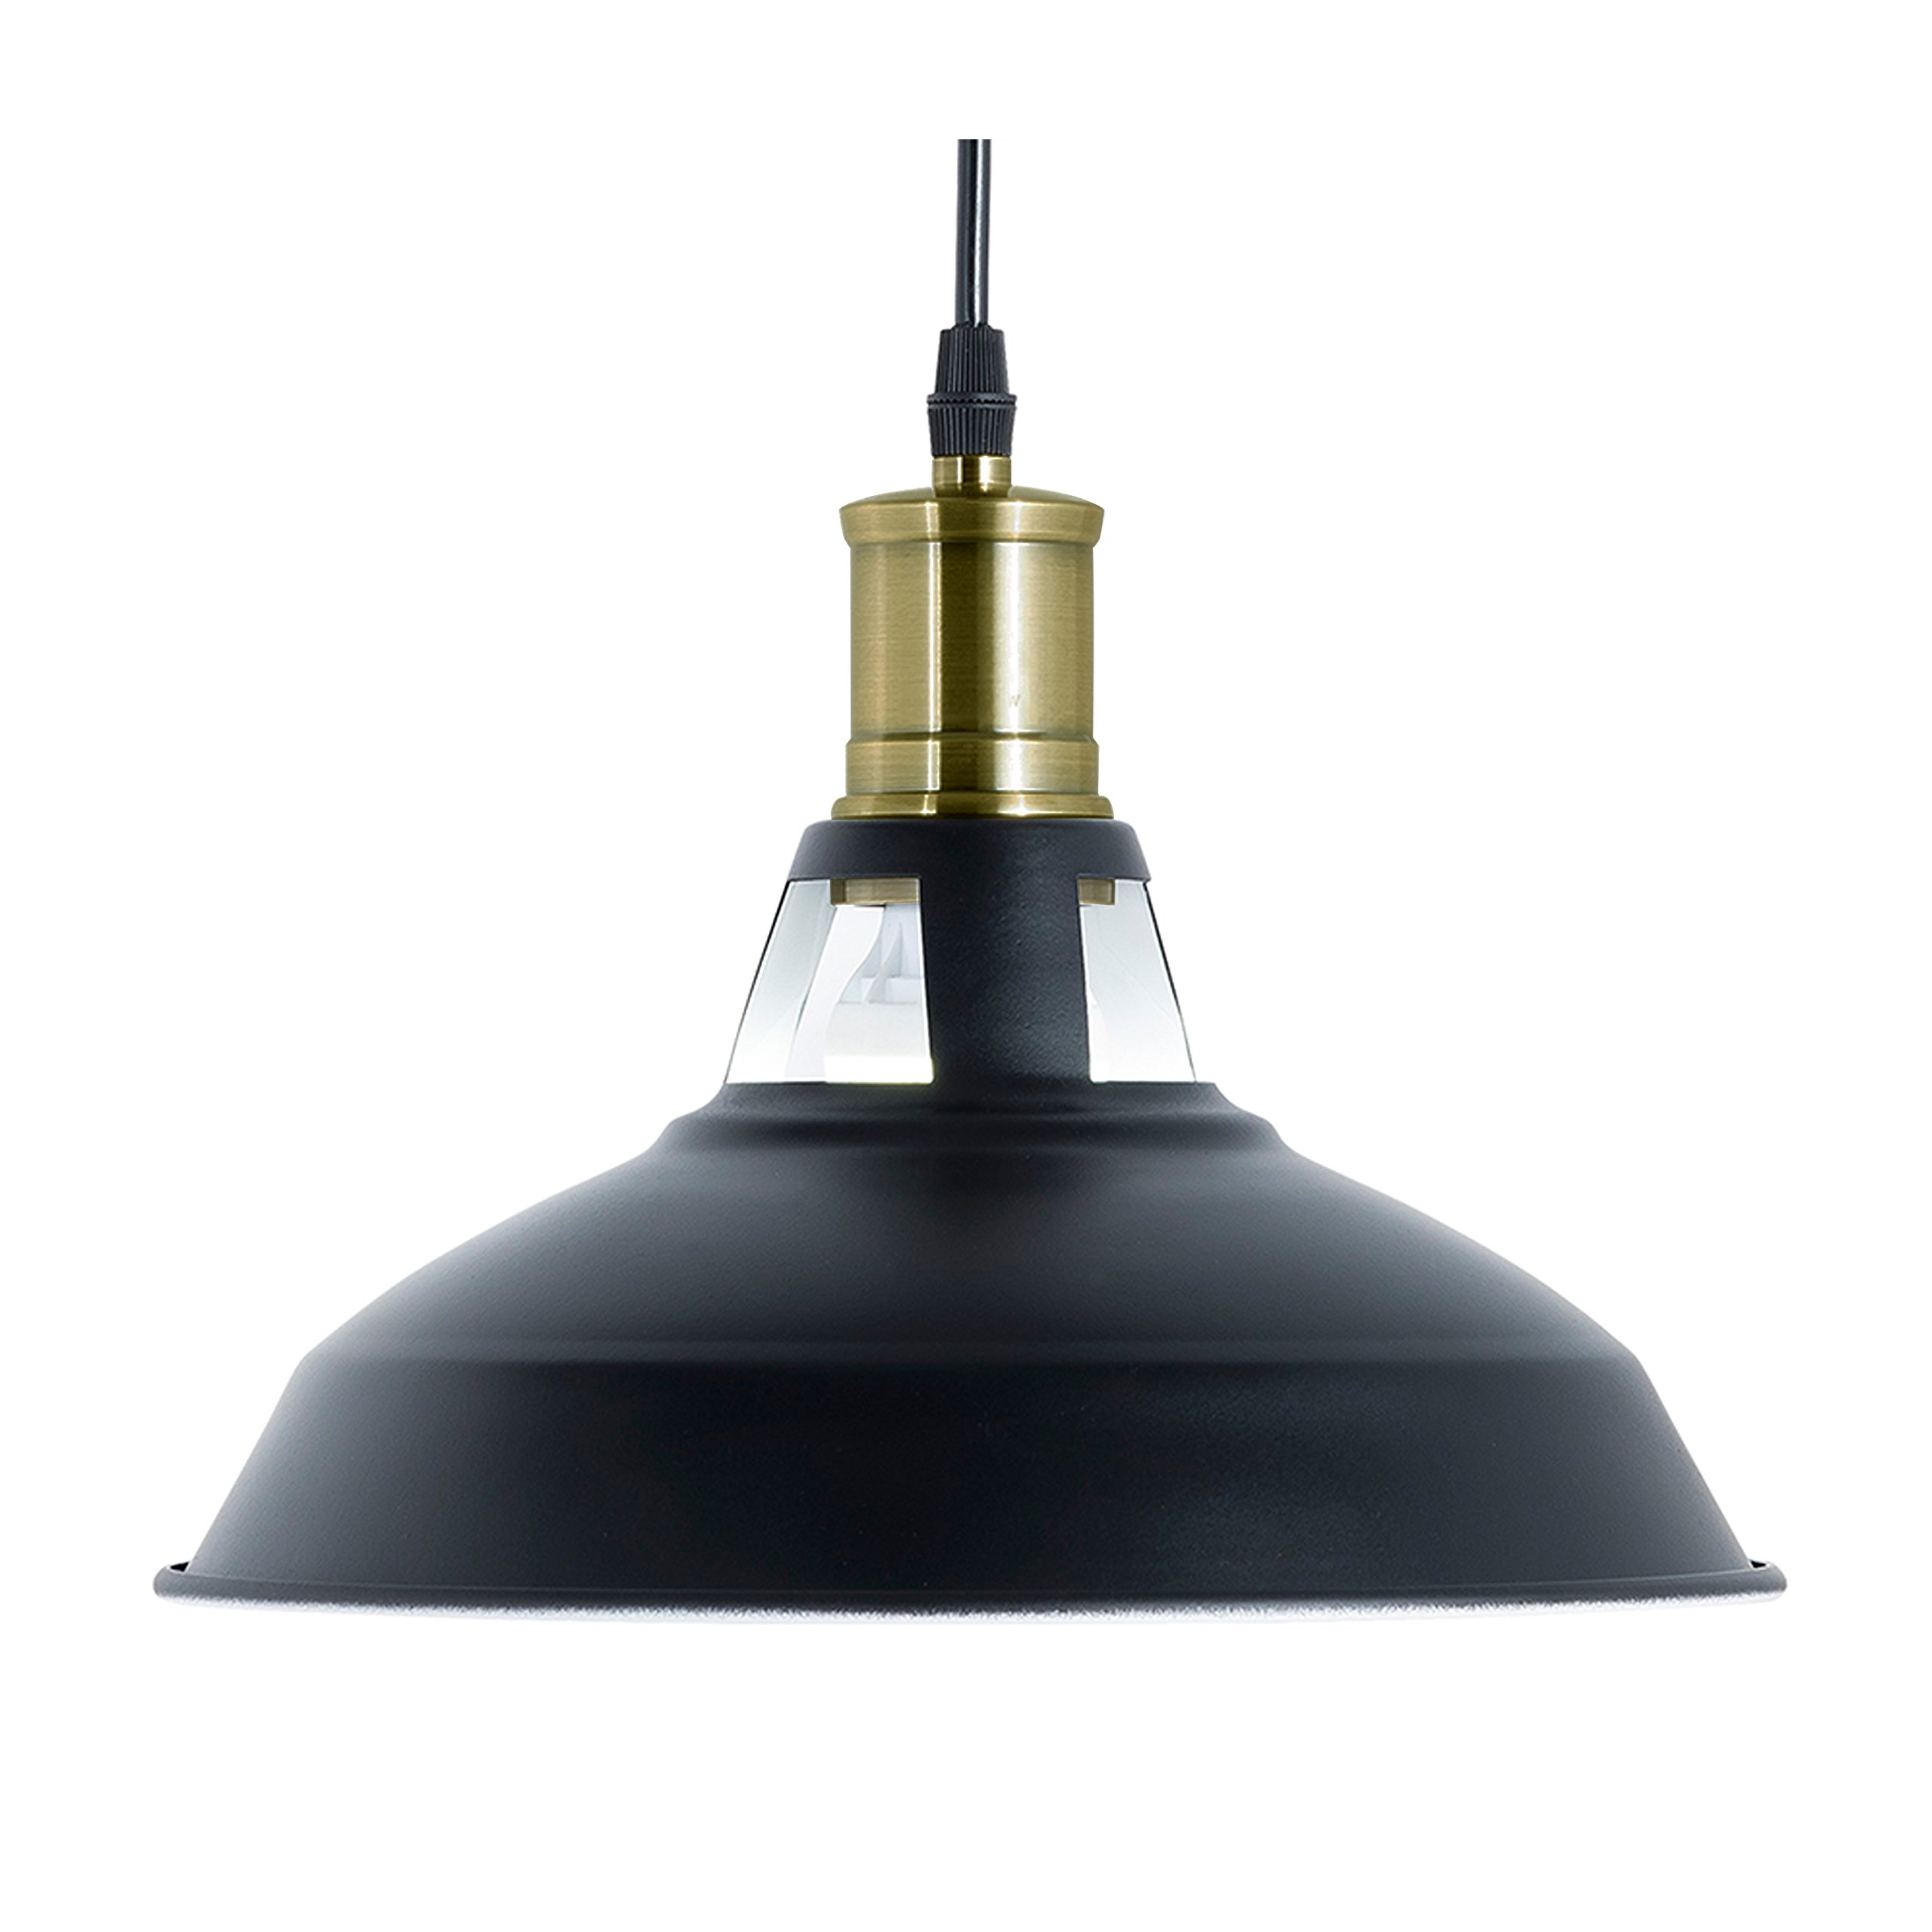 Light Society Danica Pendant Light, Matte Black Shade with White Interior and Brushed Bronze Finish, Vintage Modern Farmhouse Lighting Fixture (LS-C102) by Light Society